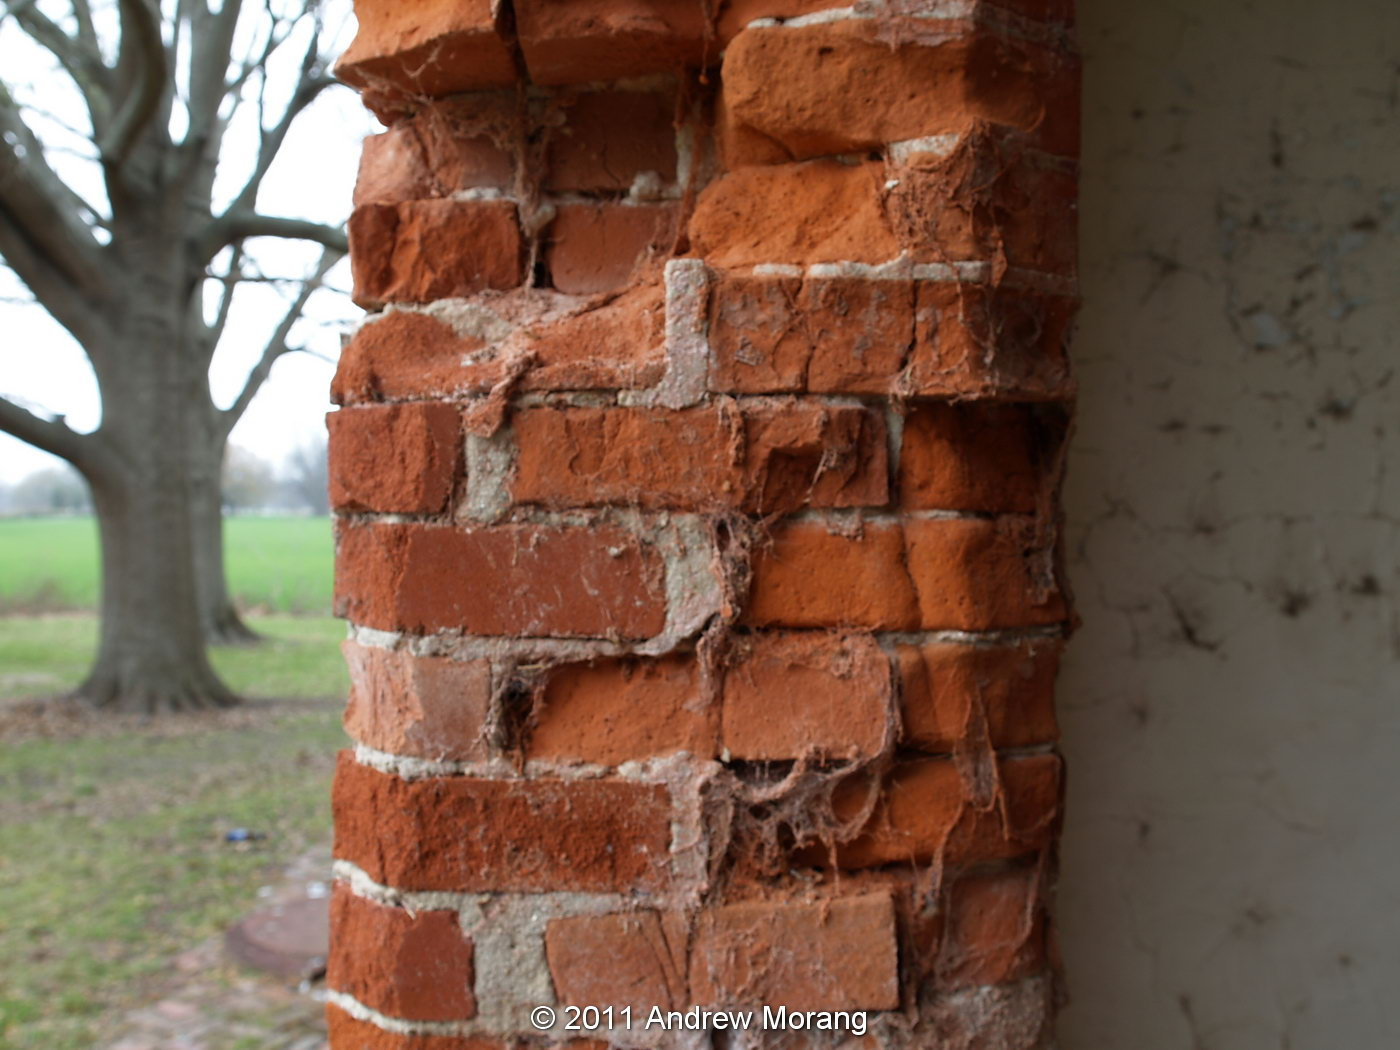 Mississippi washington county chatham - As Pointed Out In The Ms Preservation Blog Many Sections Of Brick Are Crumbling Areas Were Repointed With Modern Concrete Rather Than Soft Mortar